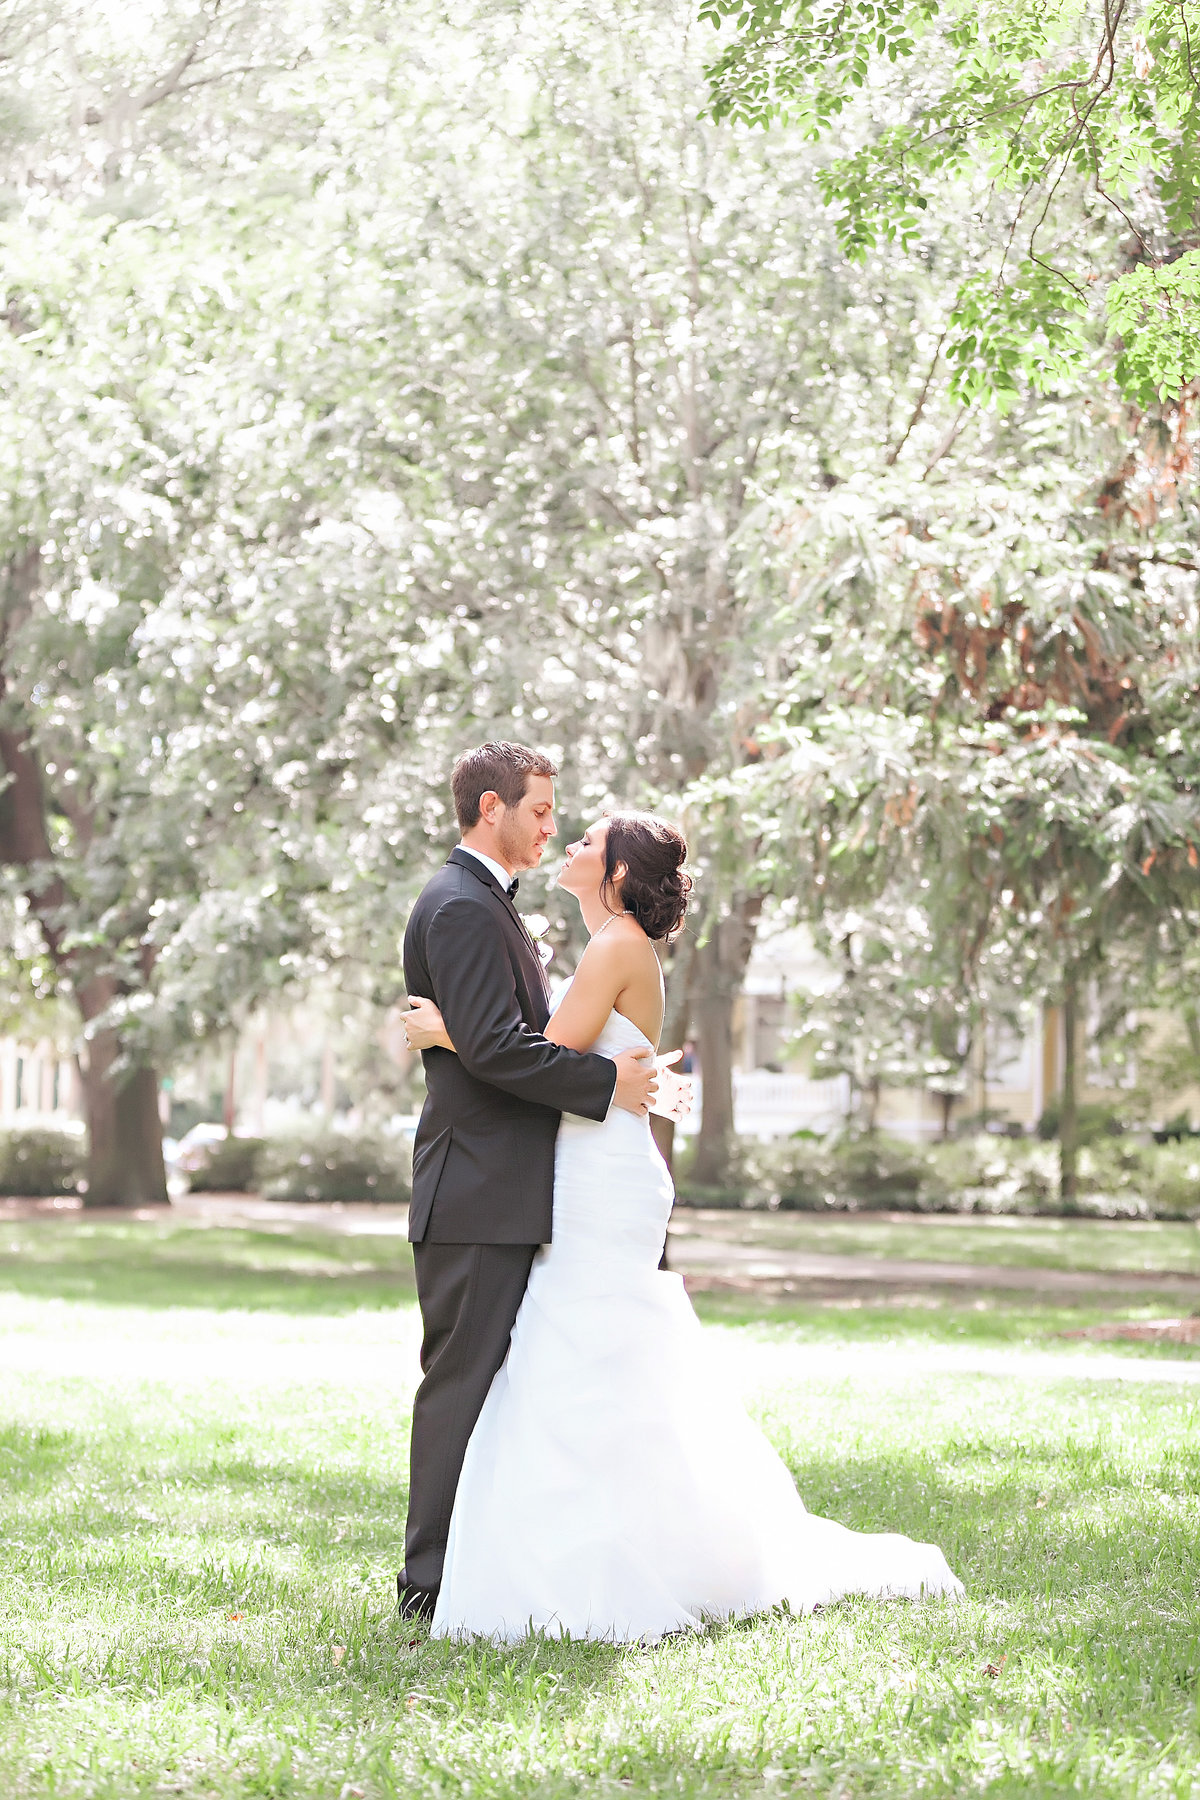 Savannah Bride Groom Westin Spring Forsyth Park Wedding